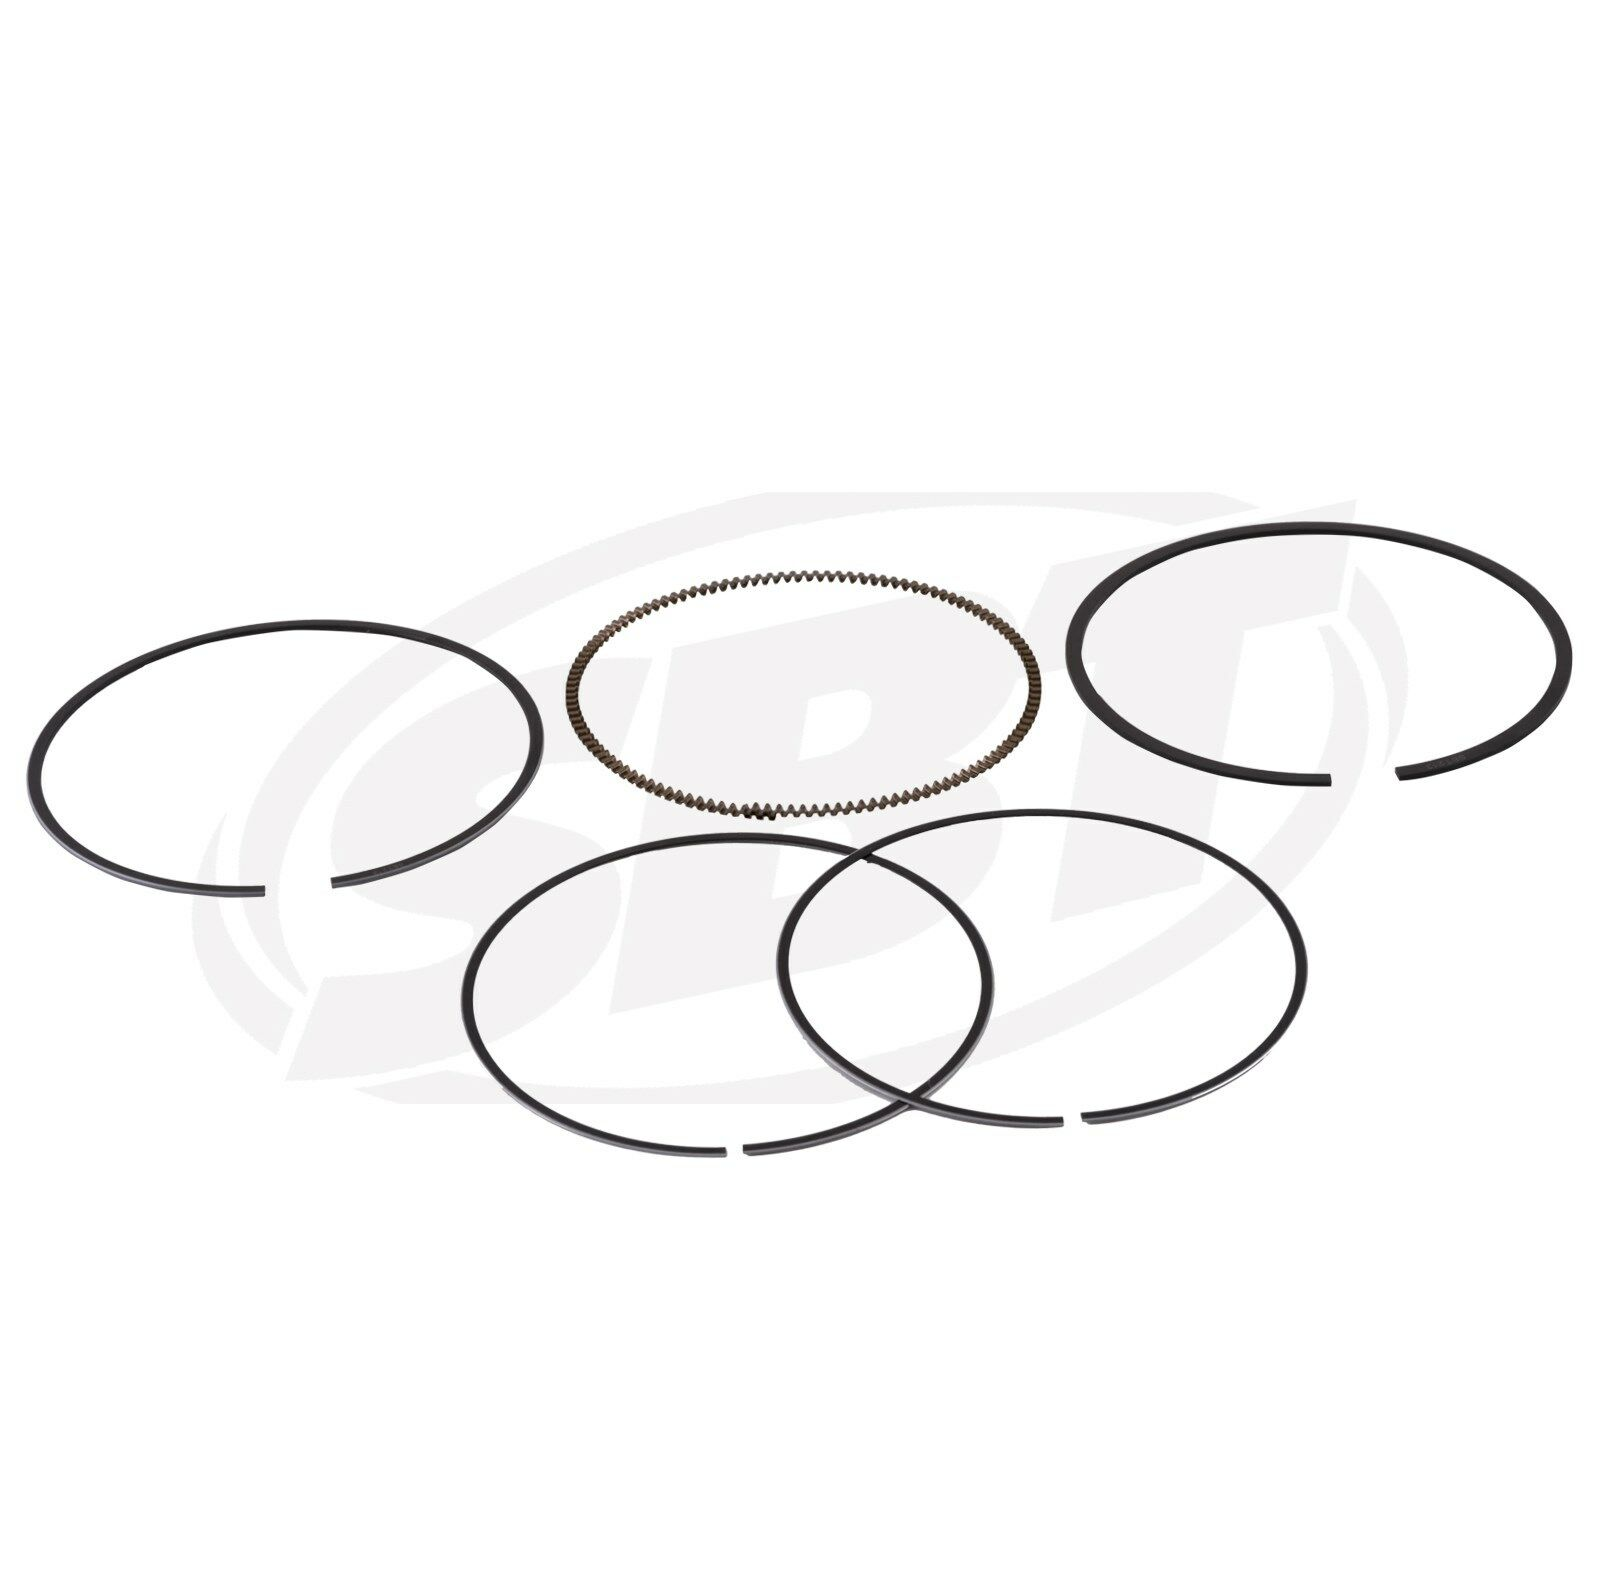 Kawasaki 2003-2007 12F and 2004-2008 15F Piston Ring Set